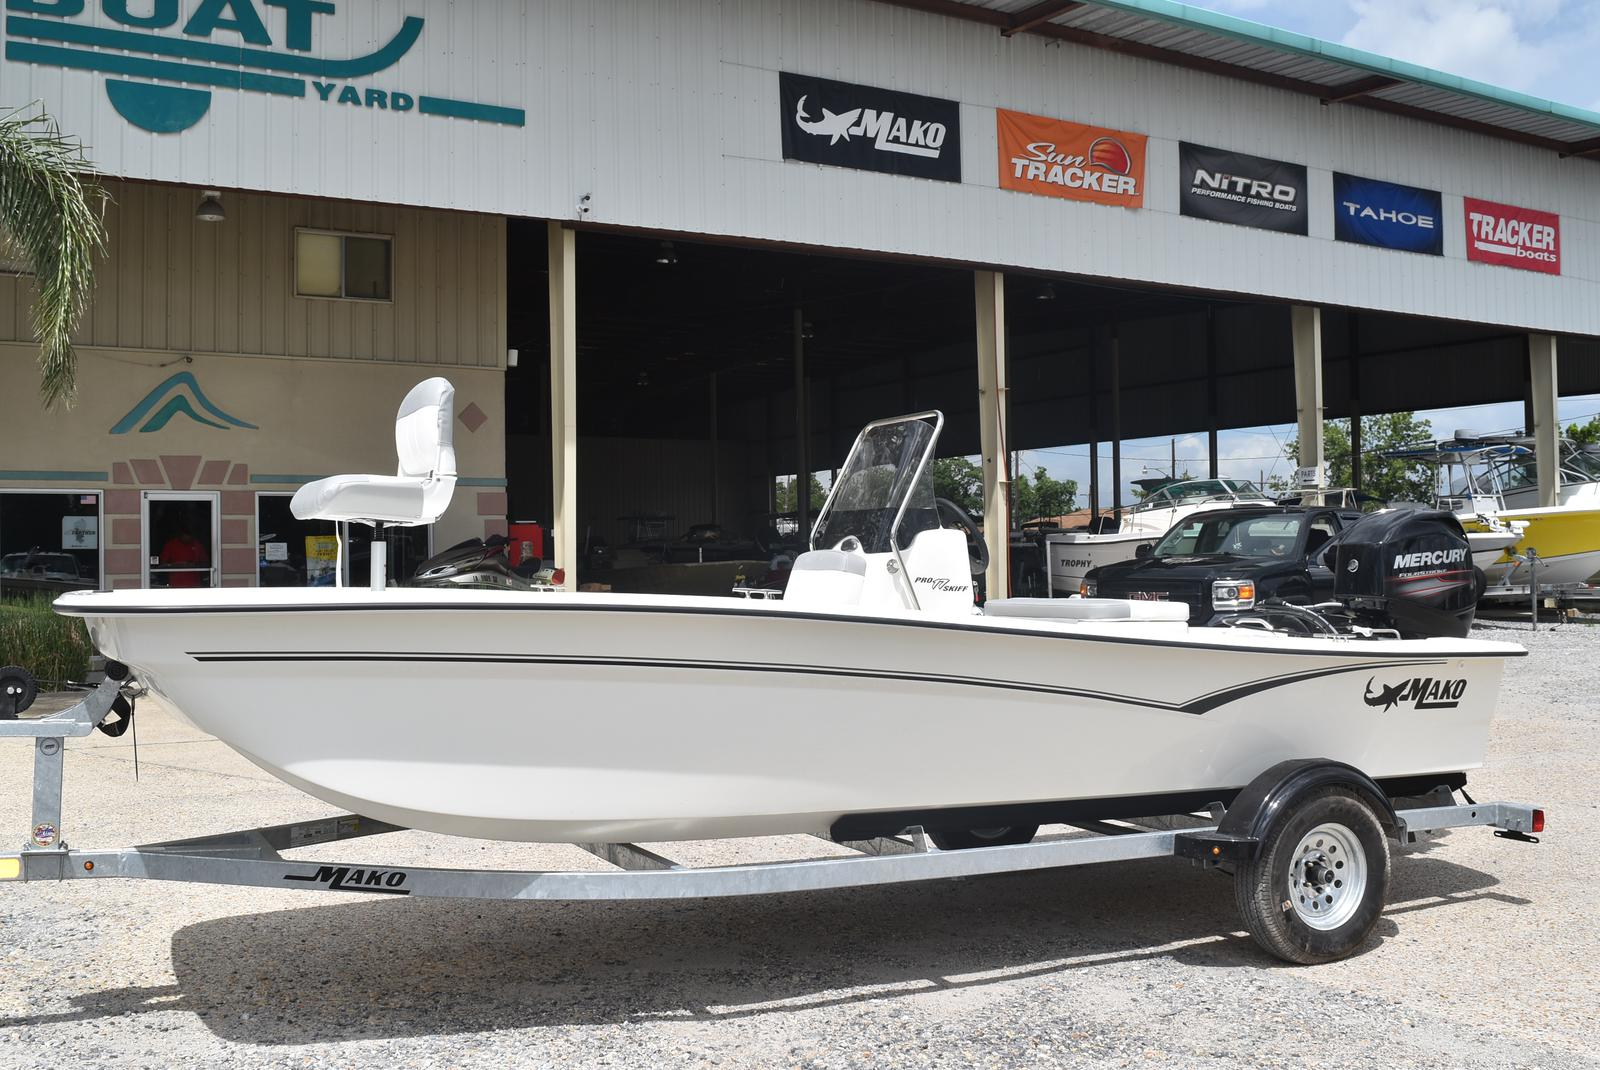 2020 Mako boat for sale, model of the boat is Pro Skiff 17, 75 ELPT & Image # 155 of 702